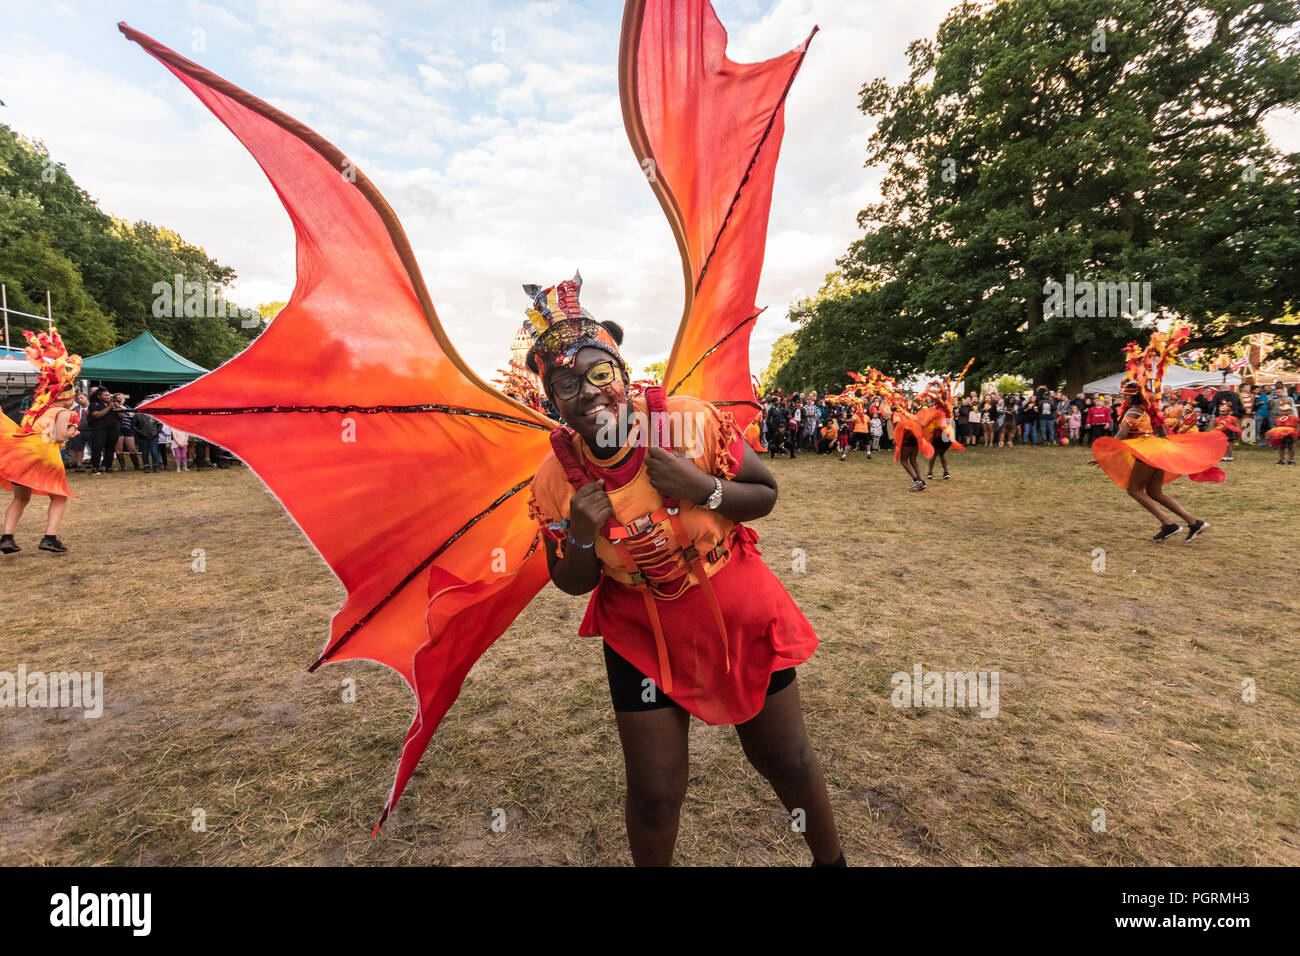 One of the dance troupe at Lunar festival smiling for the camera. Stock Photo